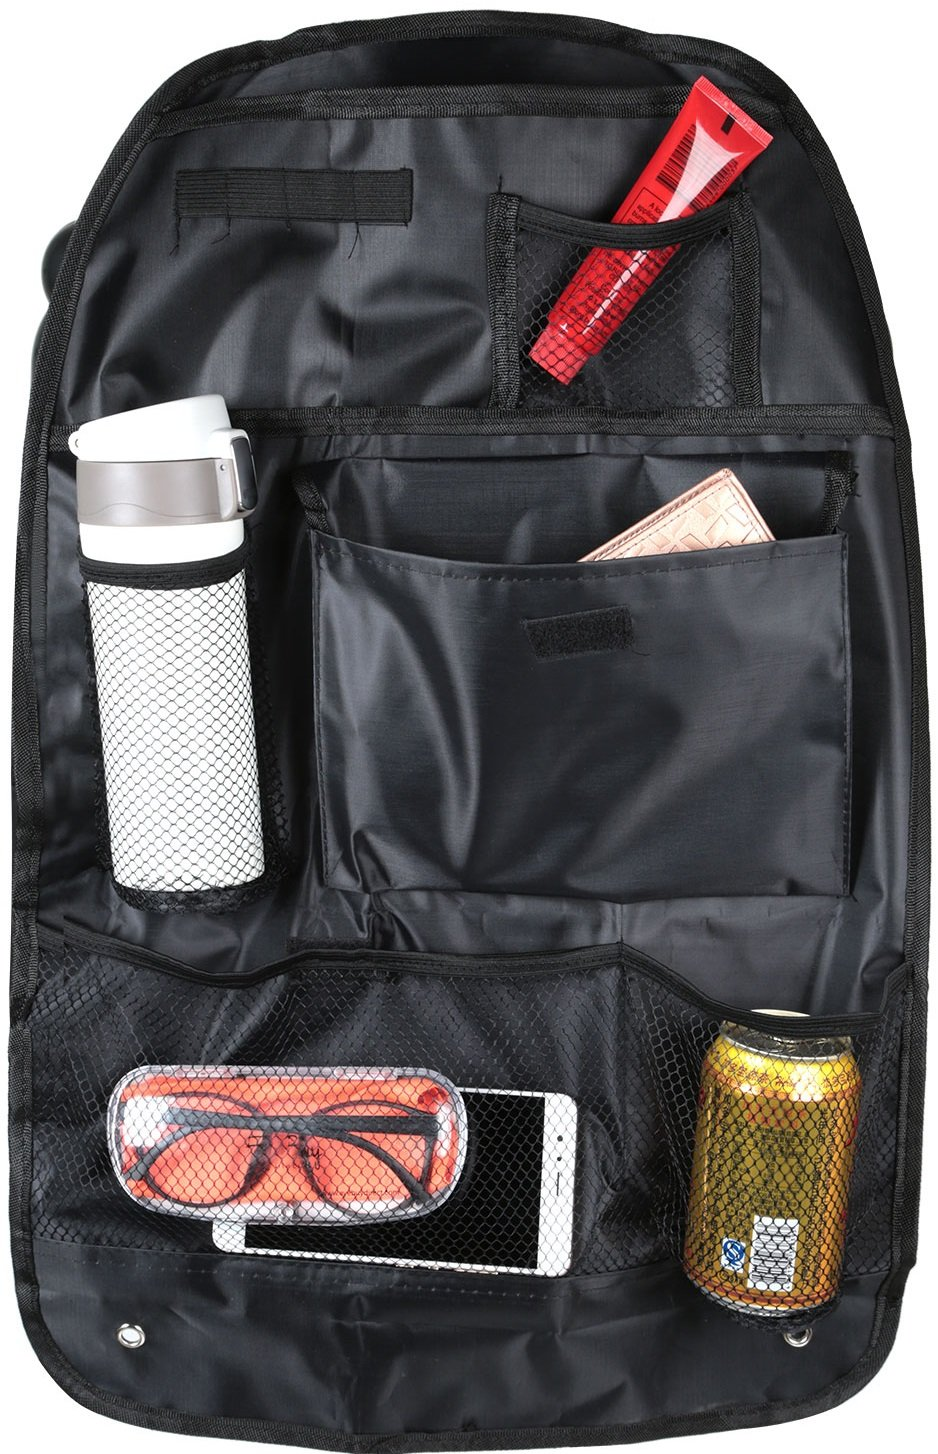 GPCT [Dual Car Backseat Maximum Storage Organizer Set. Protects Against Stains/Dirt/Scuffs. Ideal for Drinks/Snacks/Magazines/Maps/Pens/Umbrellas/Cell Phones- Universal Fit- Cars/Trucks/SUVs- Black